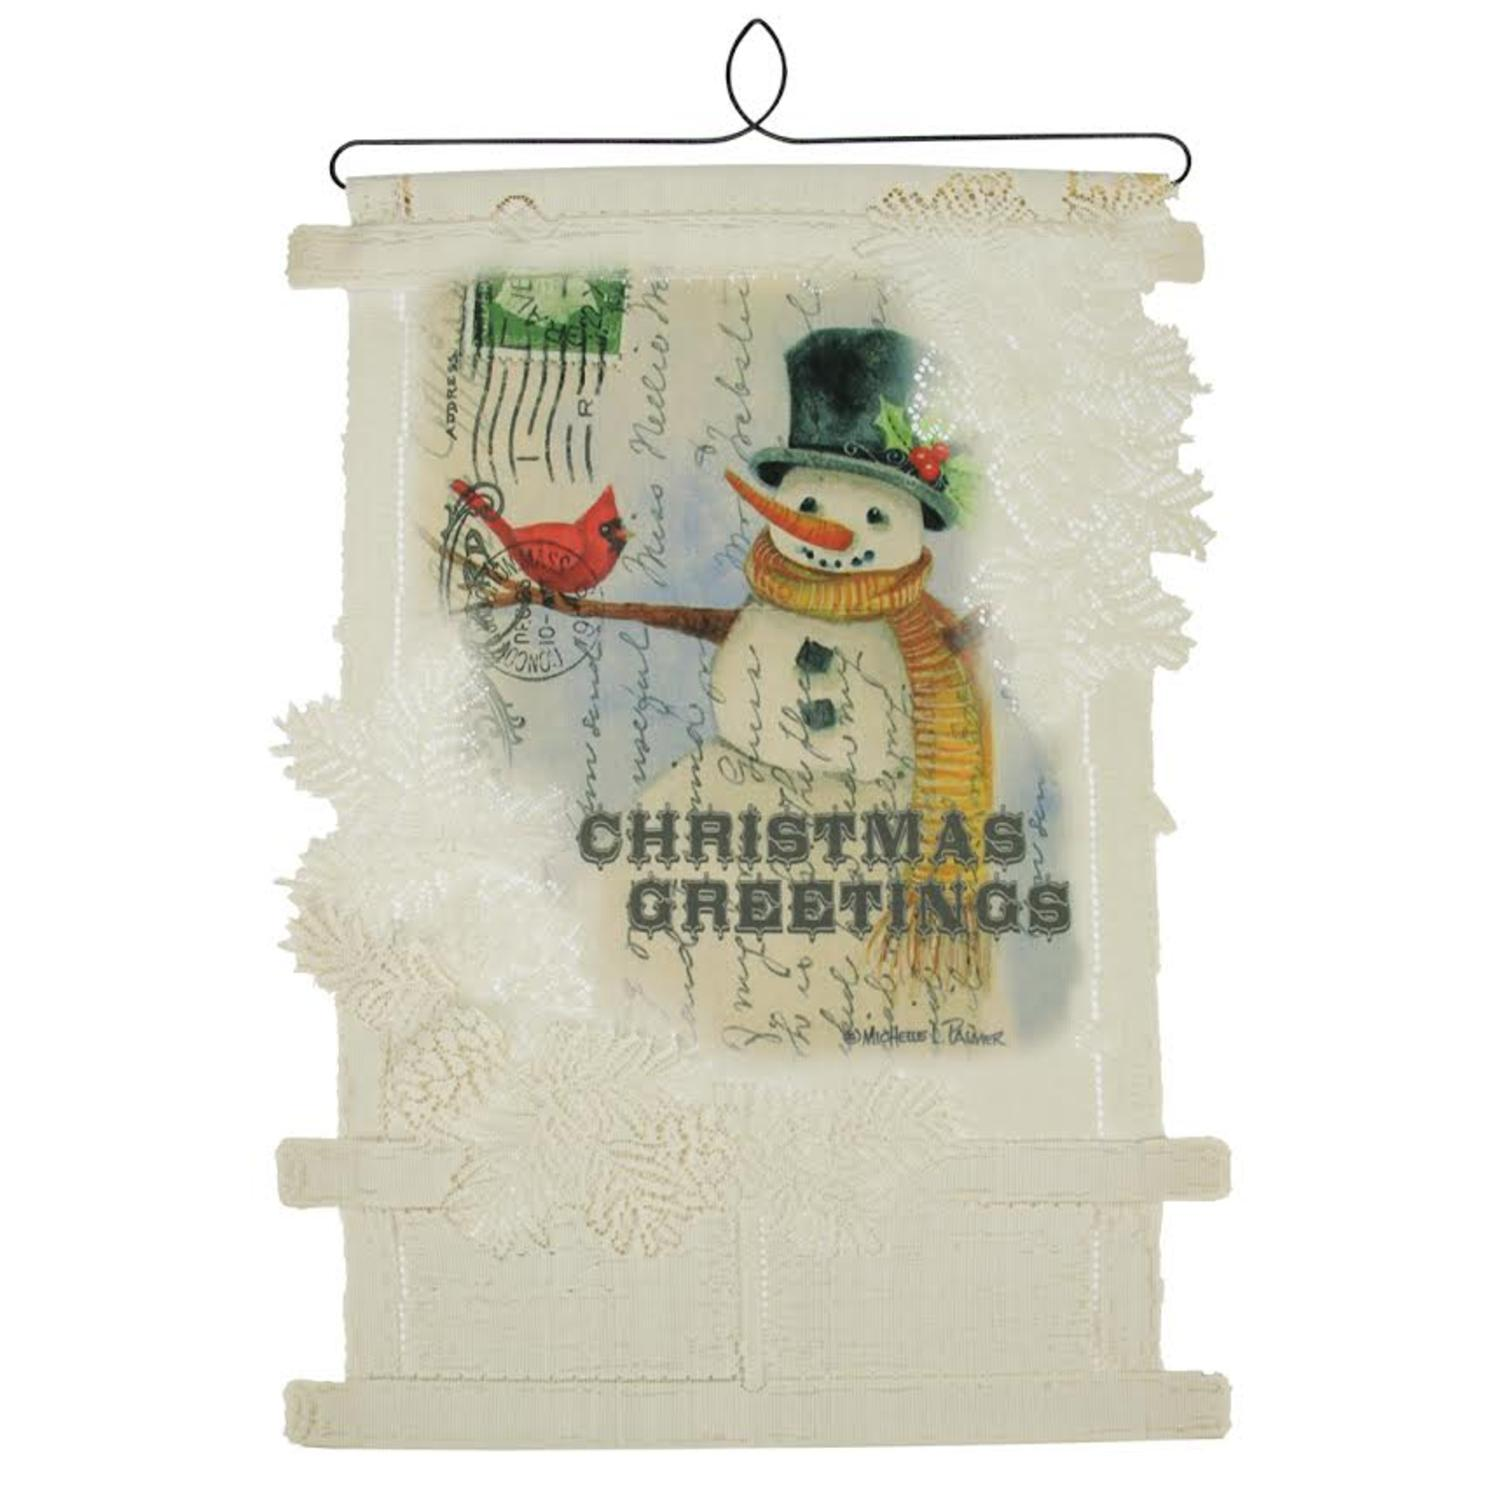 Heritage lace 20 country christmas greetings snowman - Christmas card wall holder ...